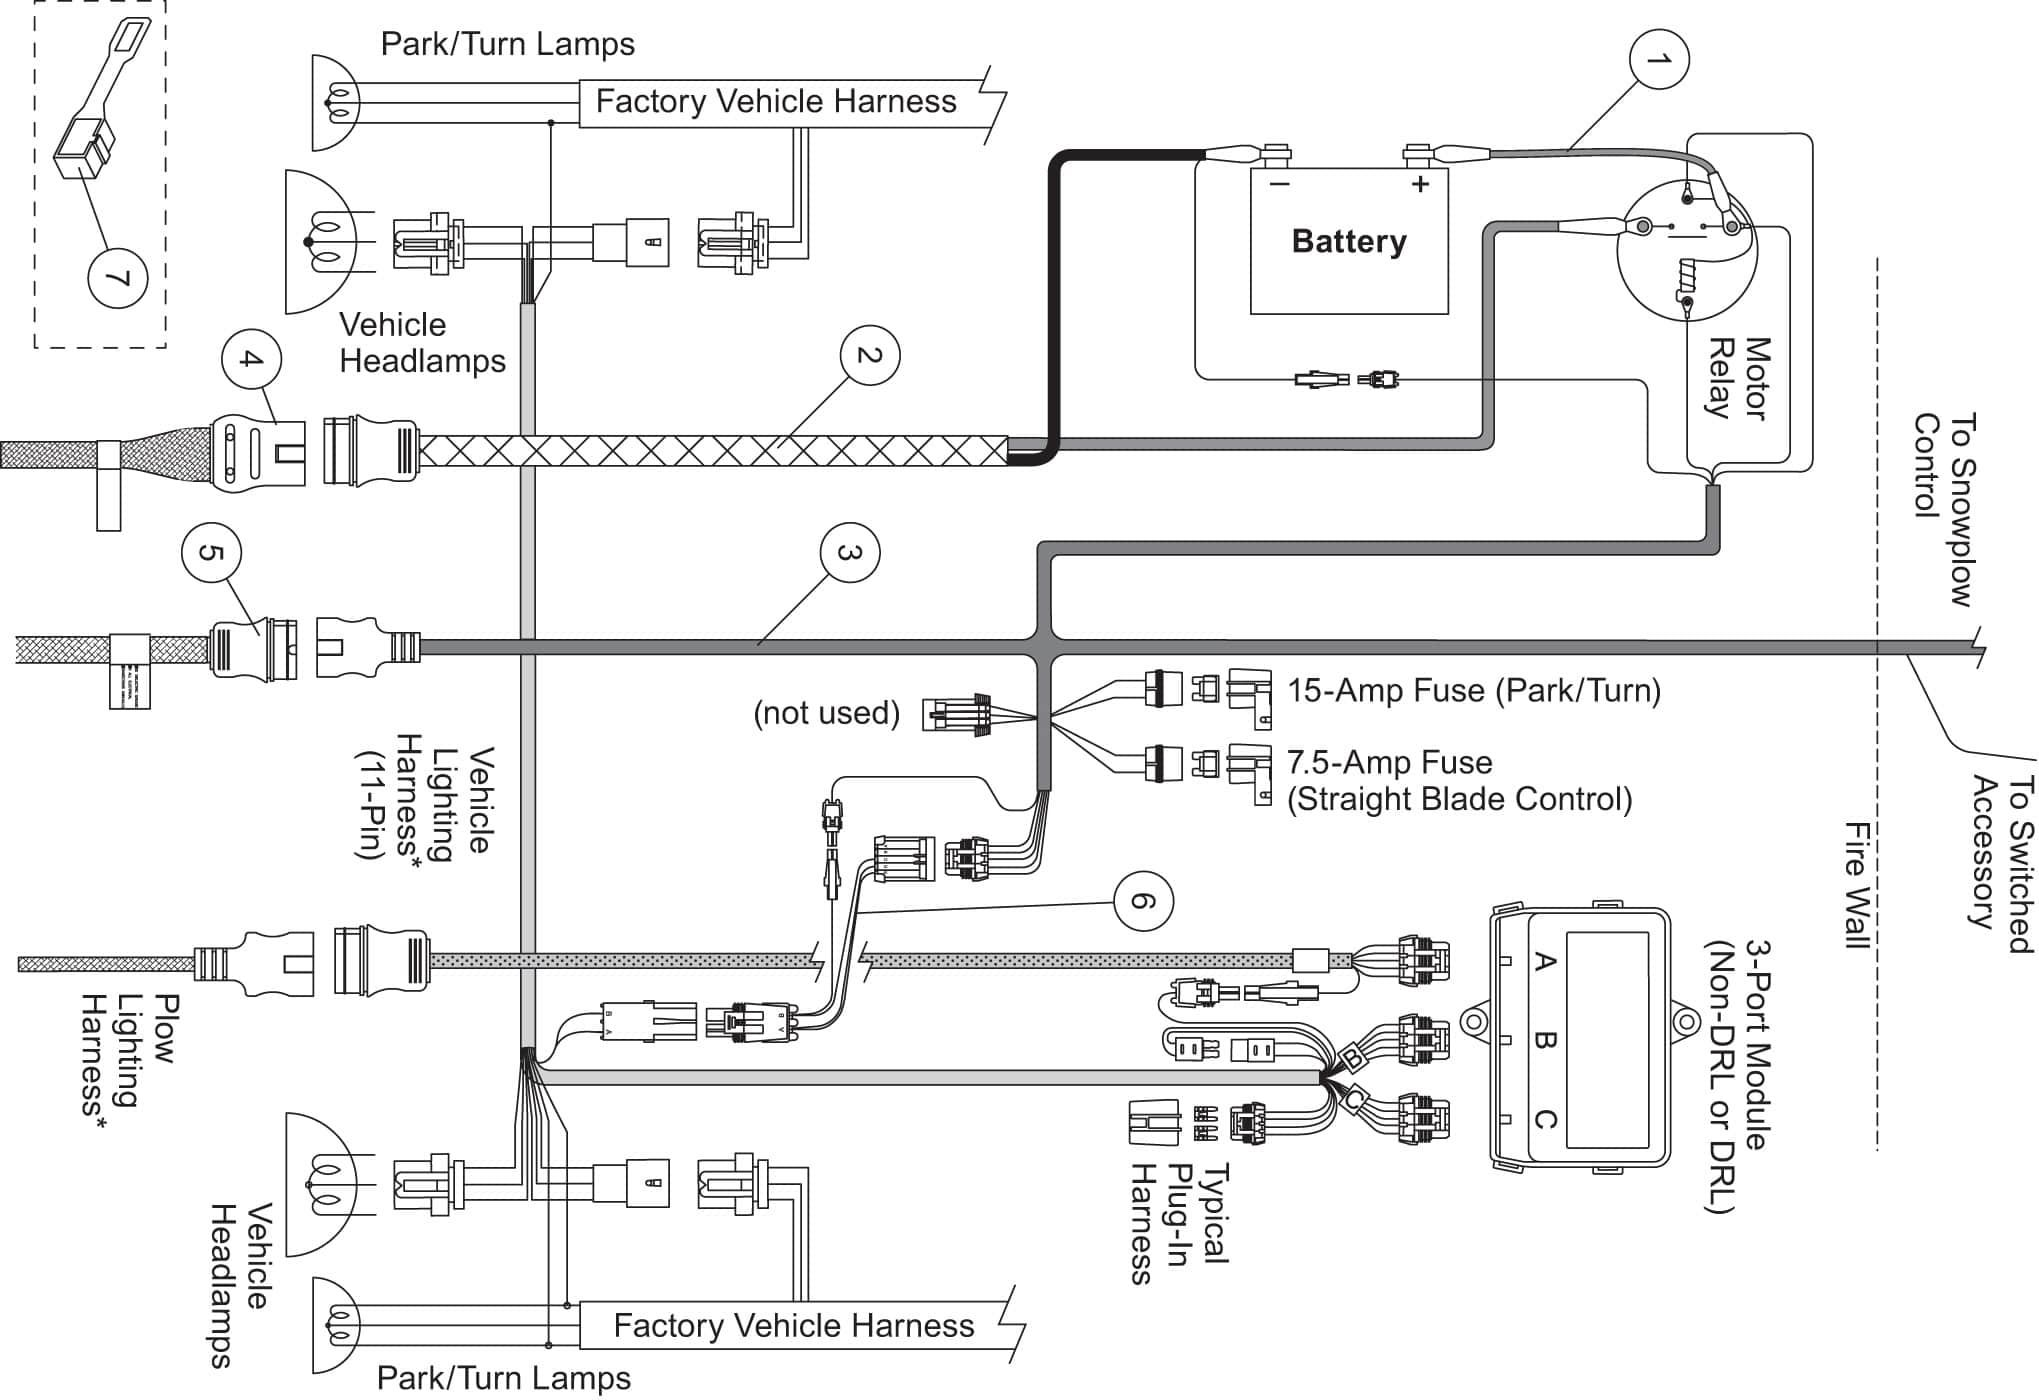 meyers snow plow wiring diagram | snow plow, snow plow lights, electrical  wiring diagram  pinterest